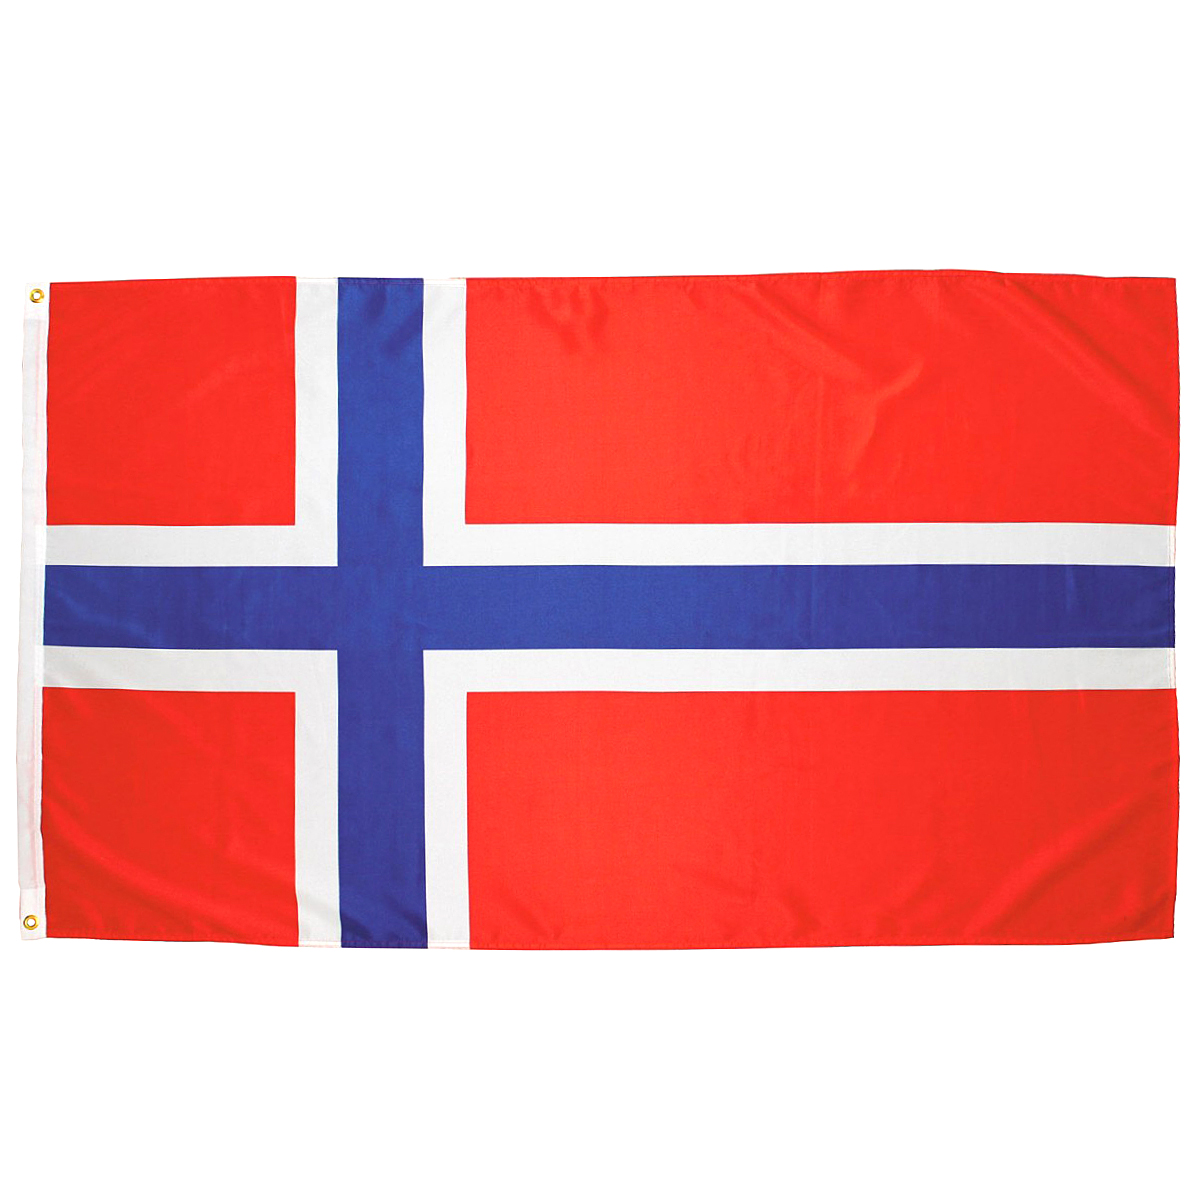 what is the flag of norway